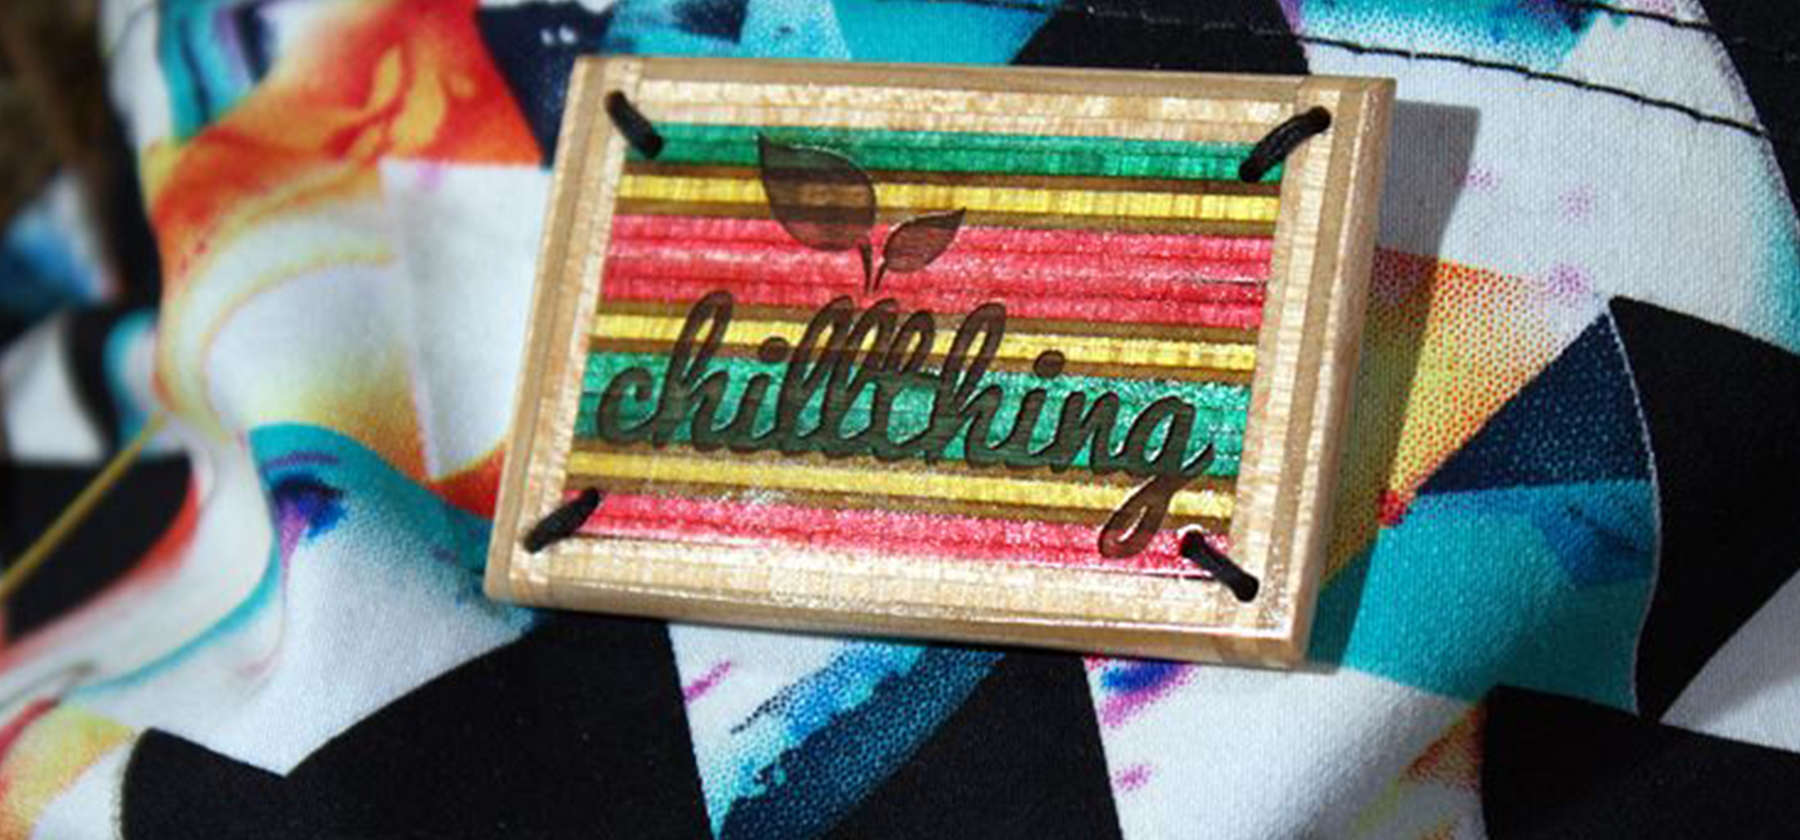 ChillThing Bag Accessories